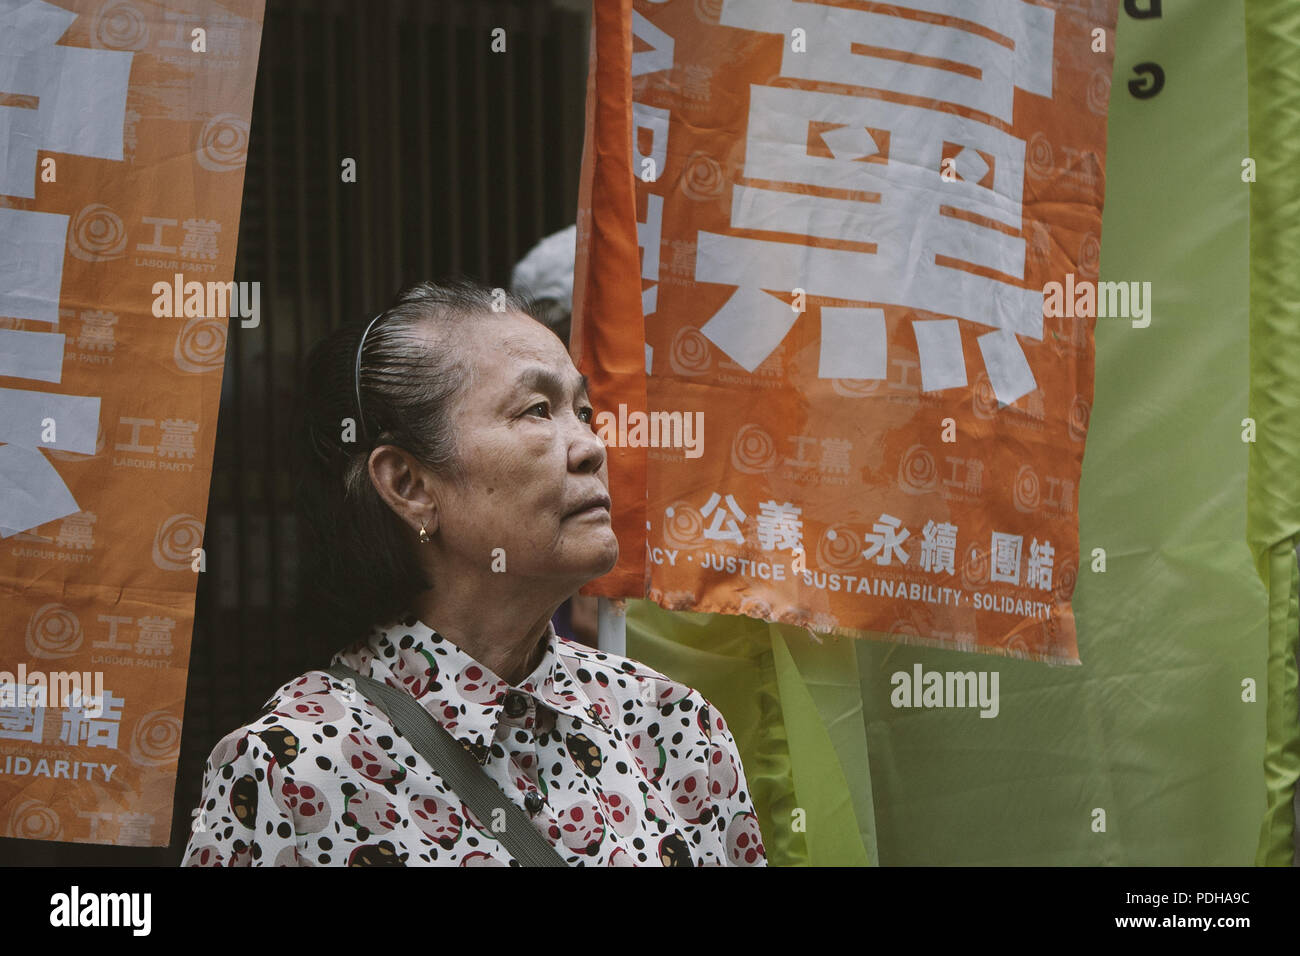 Hong Kong, Hong Kong, Hong Kong. 1st July, 2017. An elderly woman seen watching the crowd of demonstrators.Thousands came together and demonstrated to mark the 20th anniversary of the Handover from Britain to China, Hong Kong's return to China on July 1st 1997. The protestors marched through sun and rain from Victoria Park to Admiralty, taking a stand on a variety of human-rights-related causes. Credit: Viola Gaskell/SOPA Images/ZUMA Wire/Alamy Live News - Stock Image